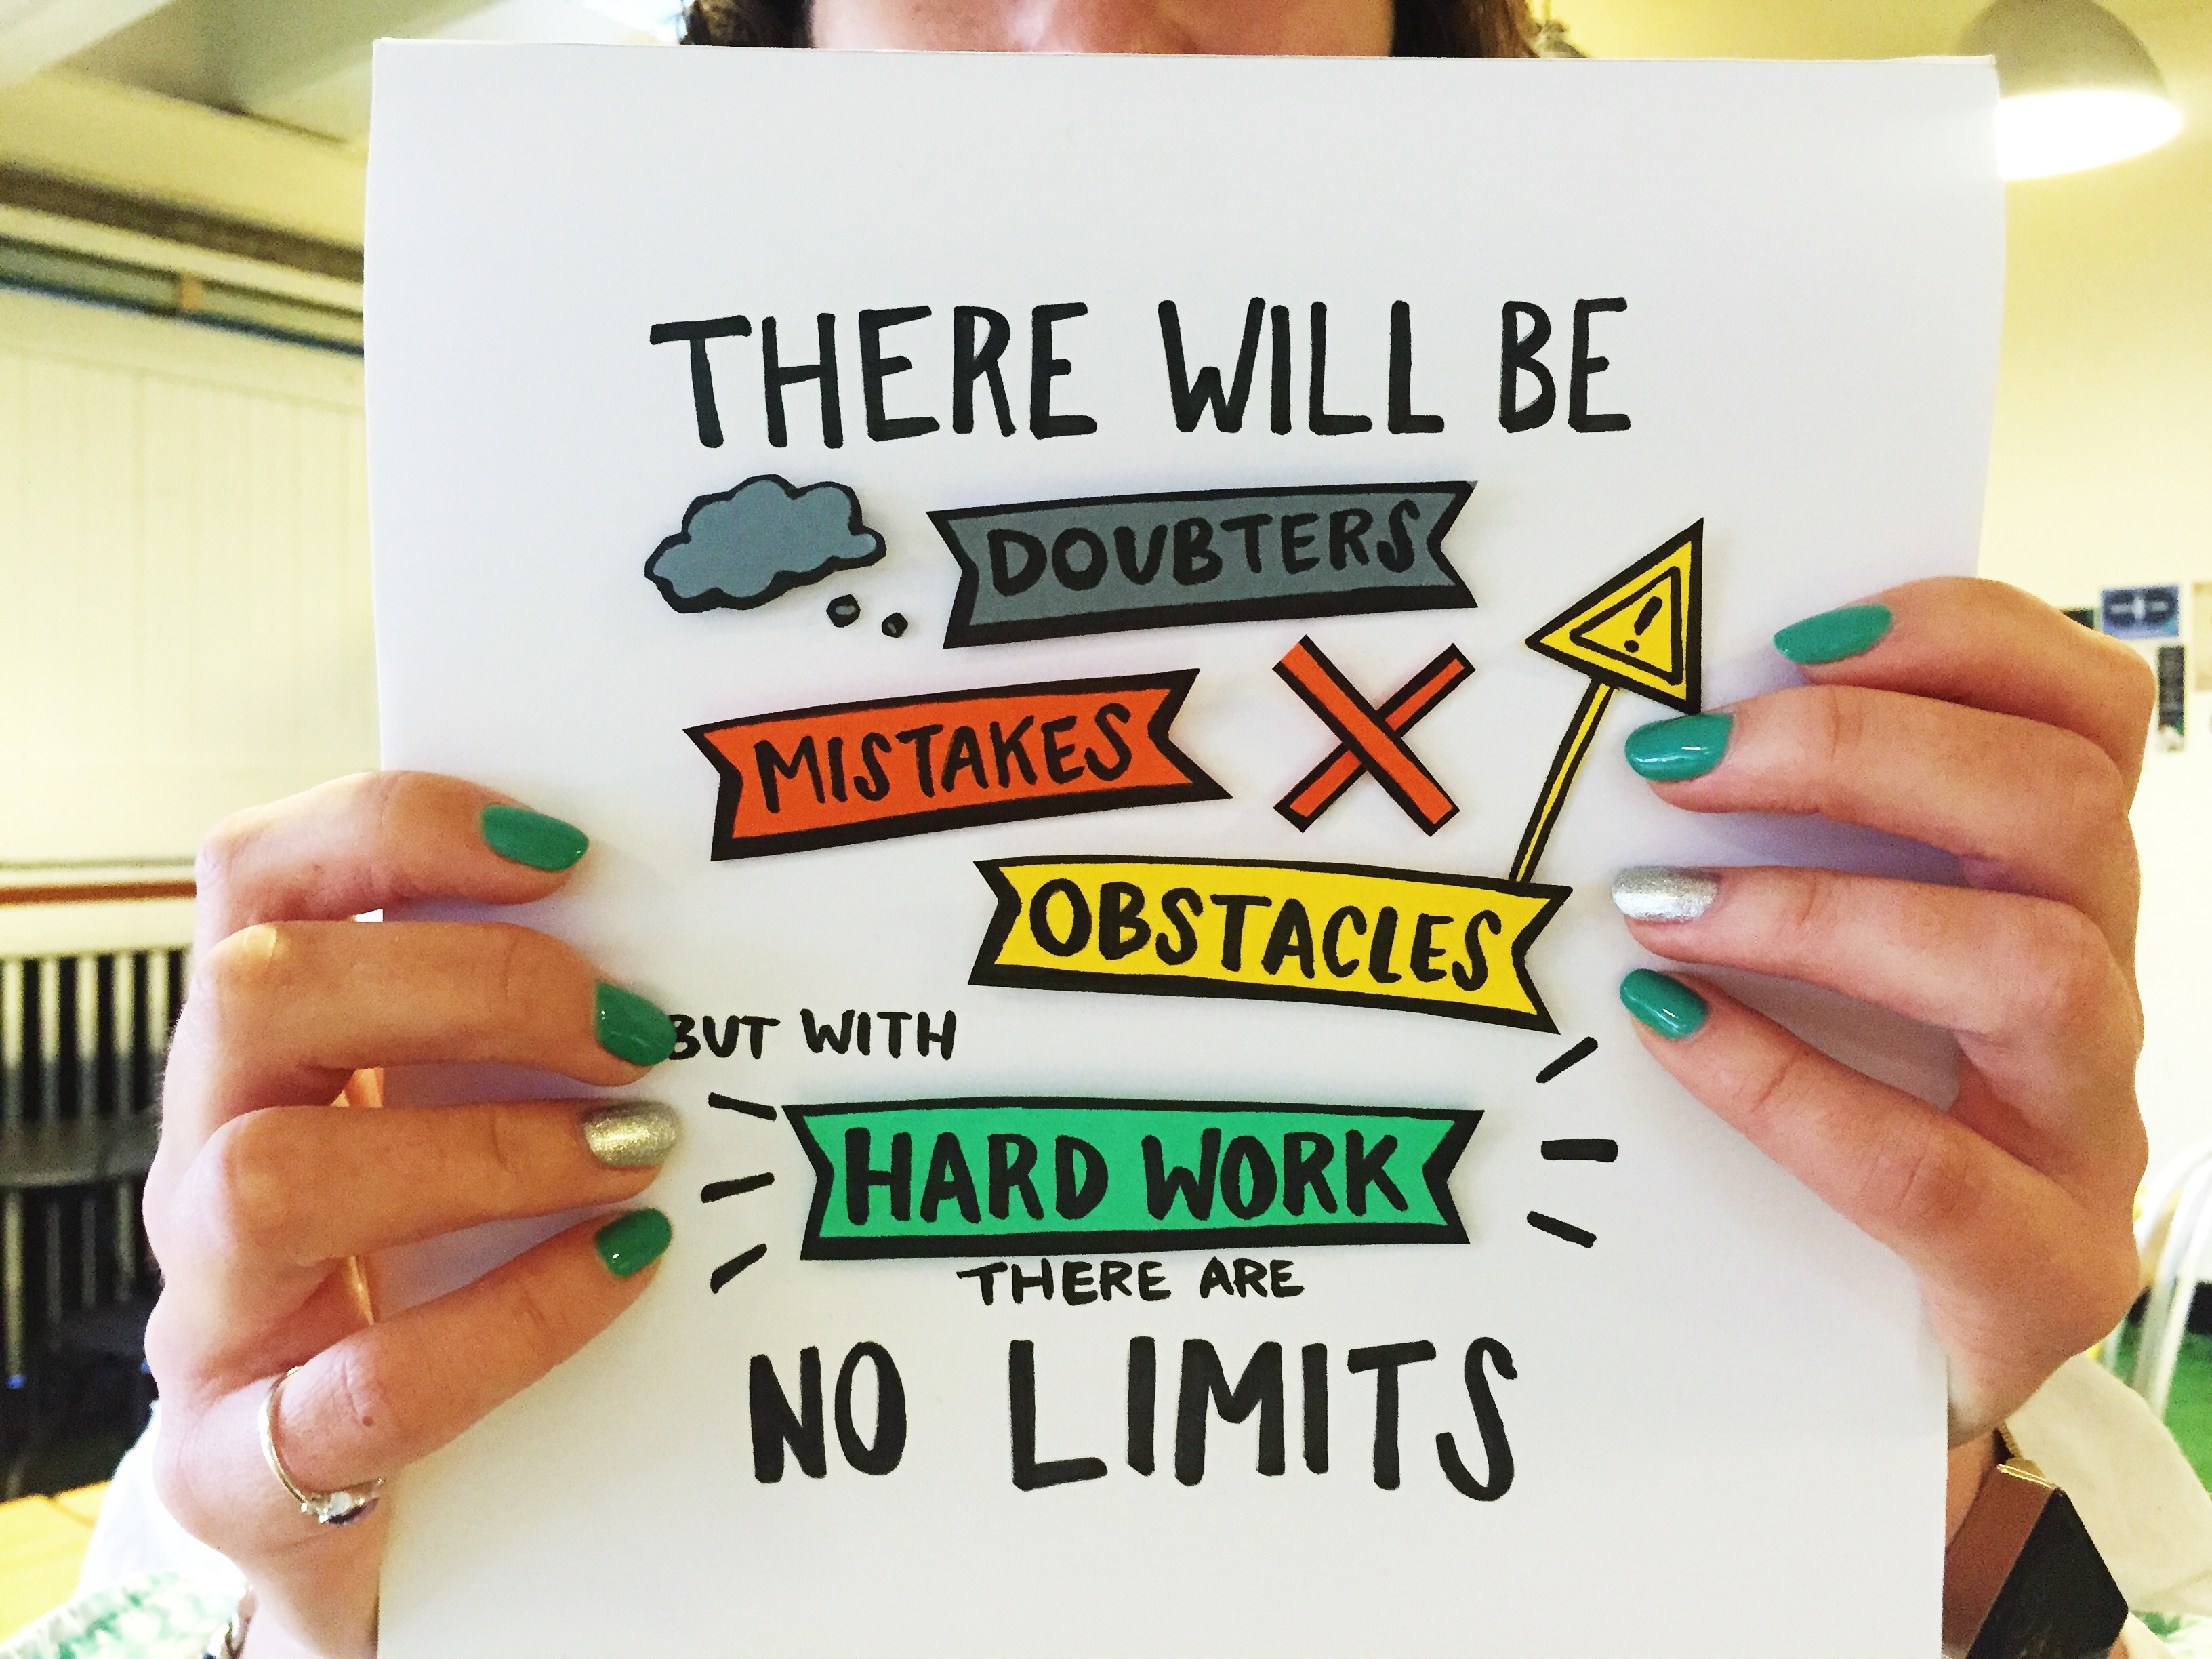 young-woman-with-green-and-golden-nail-polish-holding-motivational-poster-about-business-journey-of_t20_EOVbg4